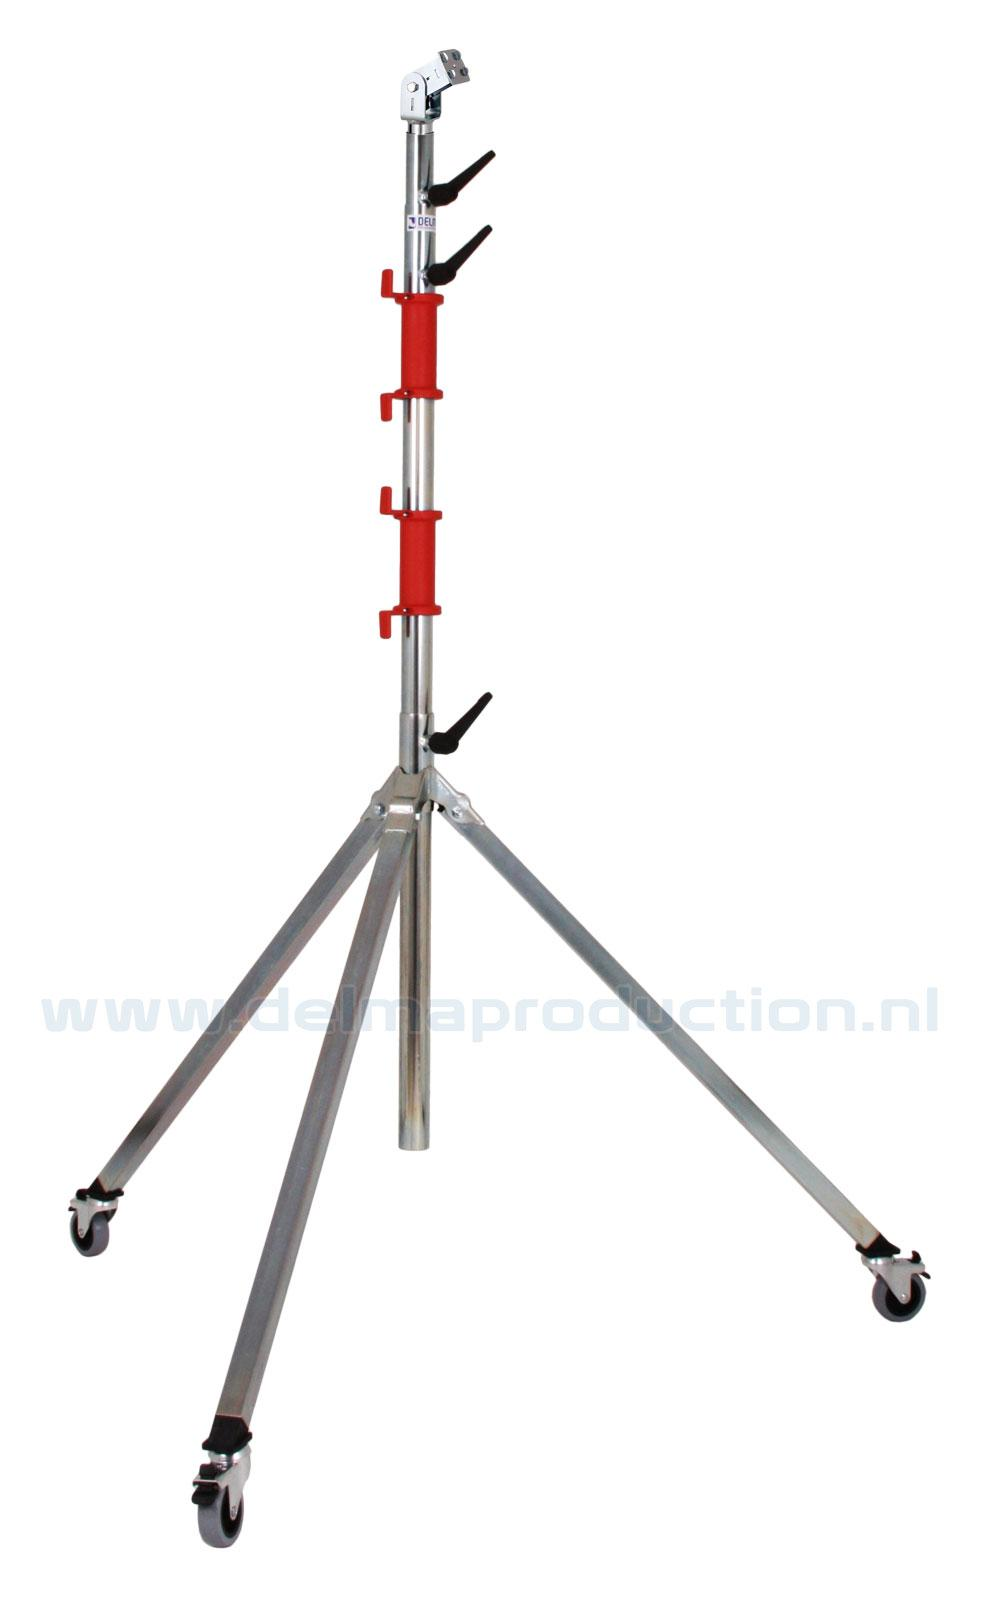 Tripod worklight stand 4-part, mobile, quick release system